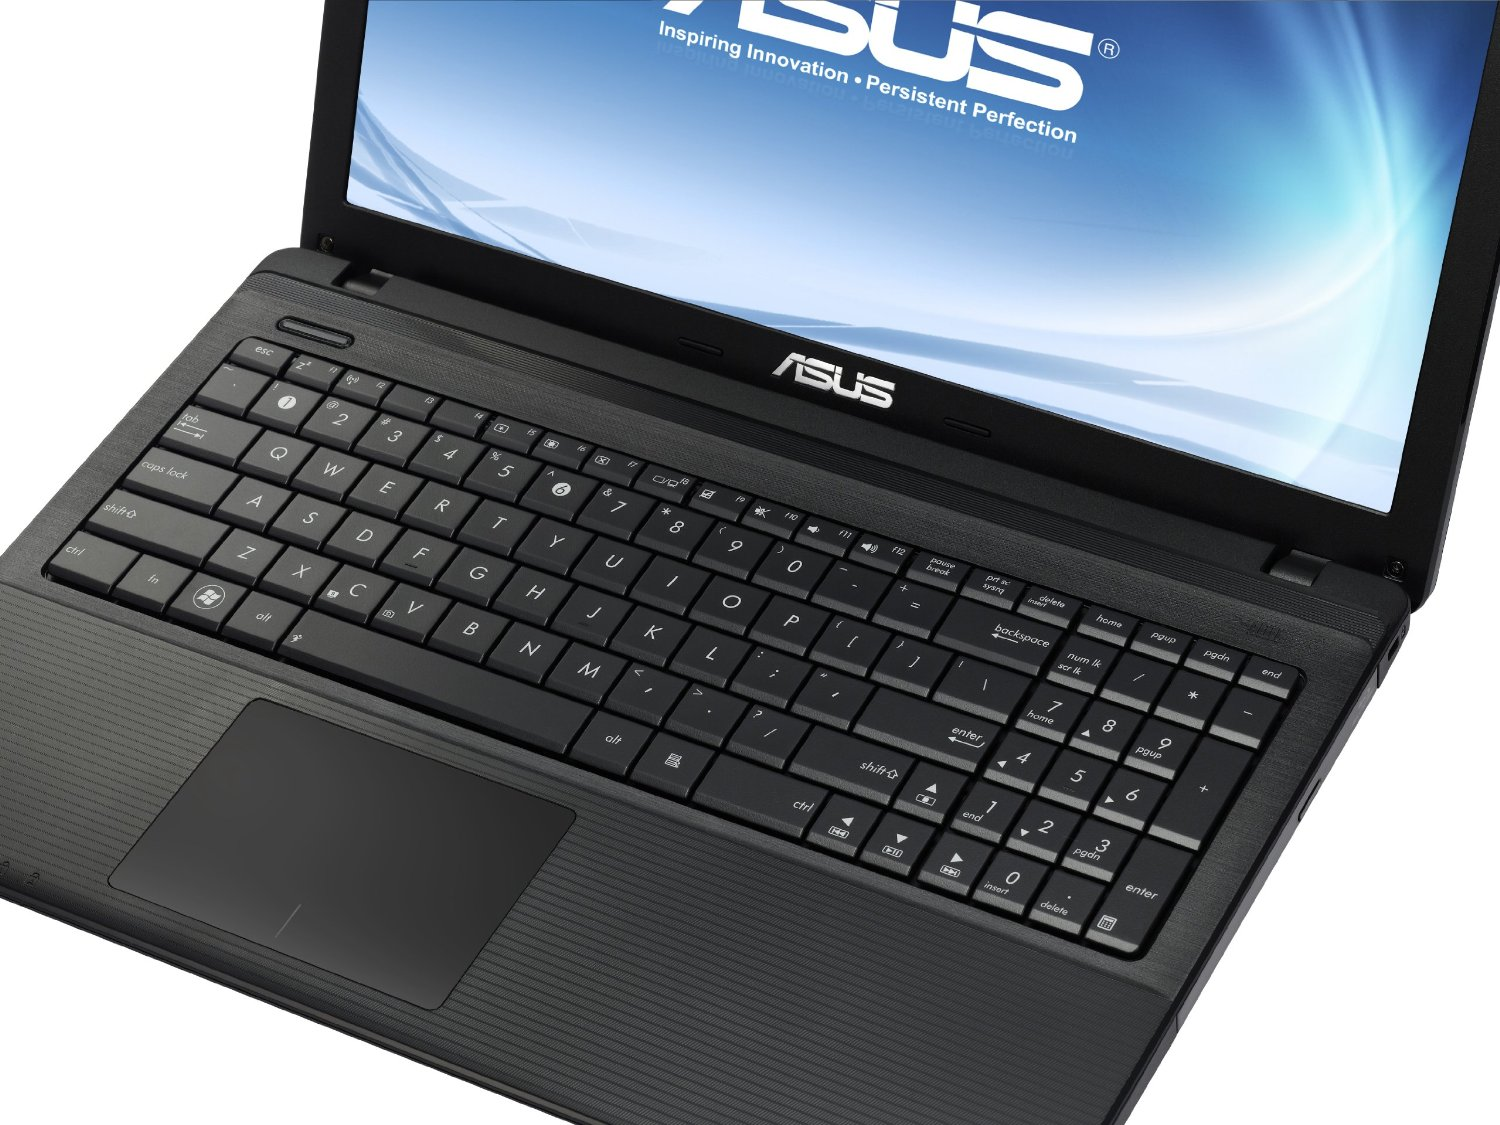 ASUS X55A LAPTOP DRIVERS FOR PC